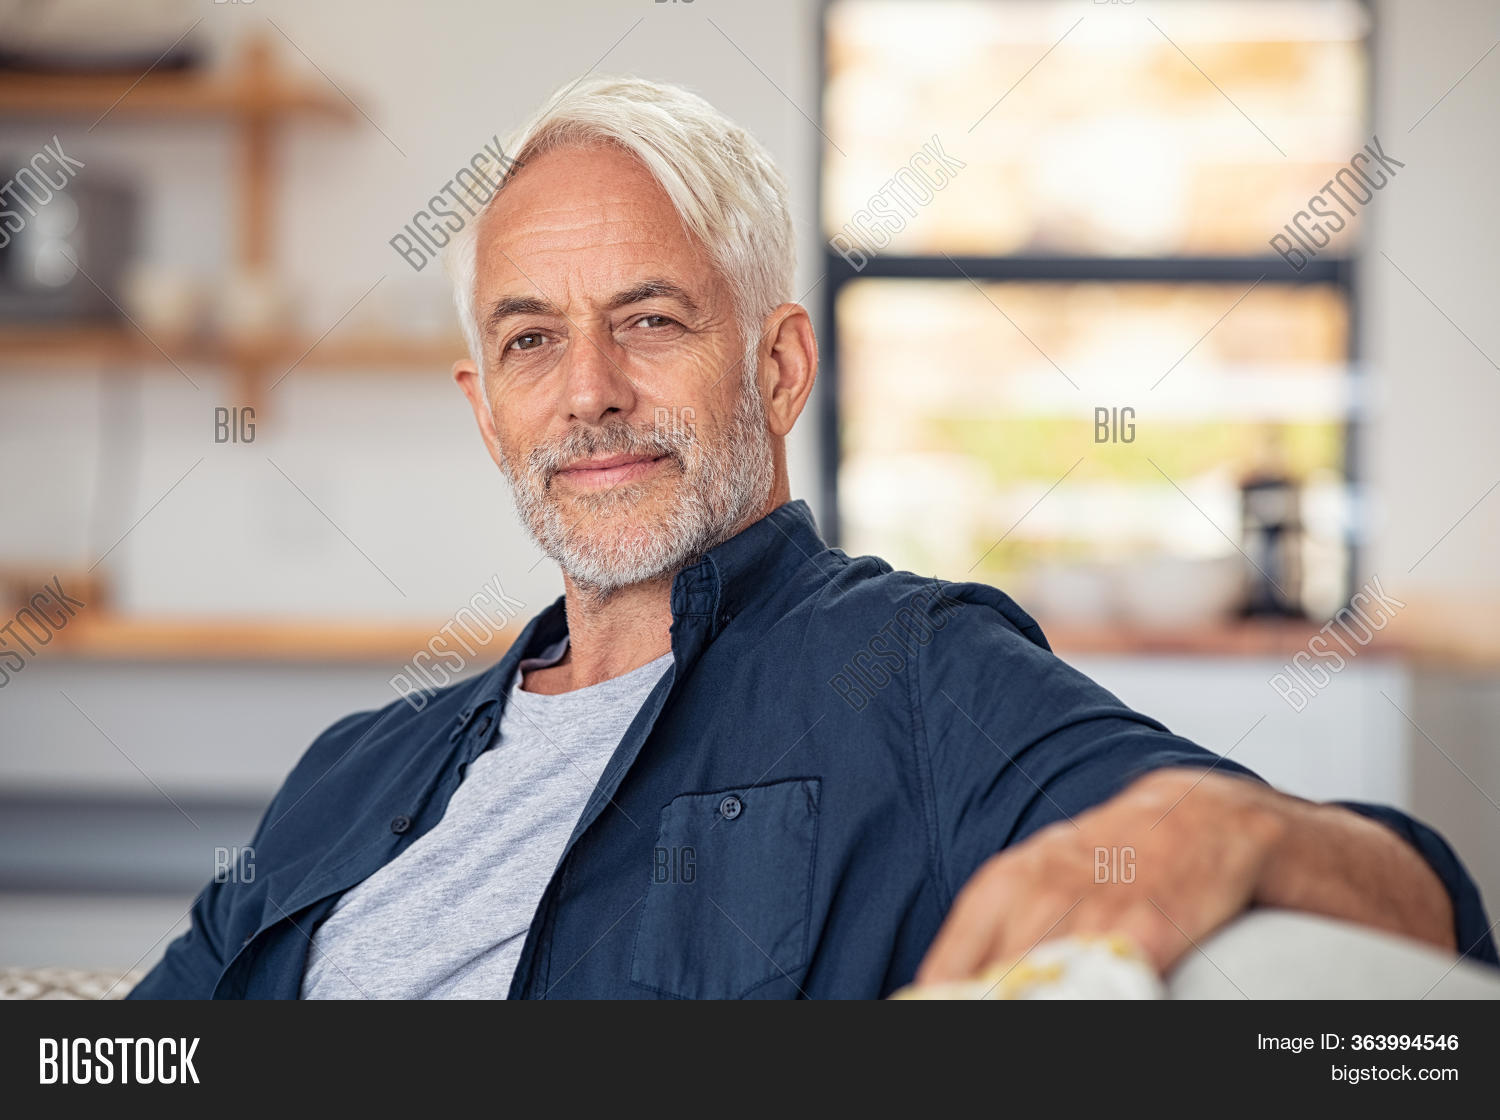 Handsome senior man with white hair sitting on couch and looking at camera. Satisfied old man relaxing on sofa while looking at camera. Portrait of proud mature man stay at home with copy space.